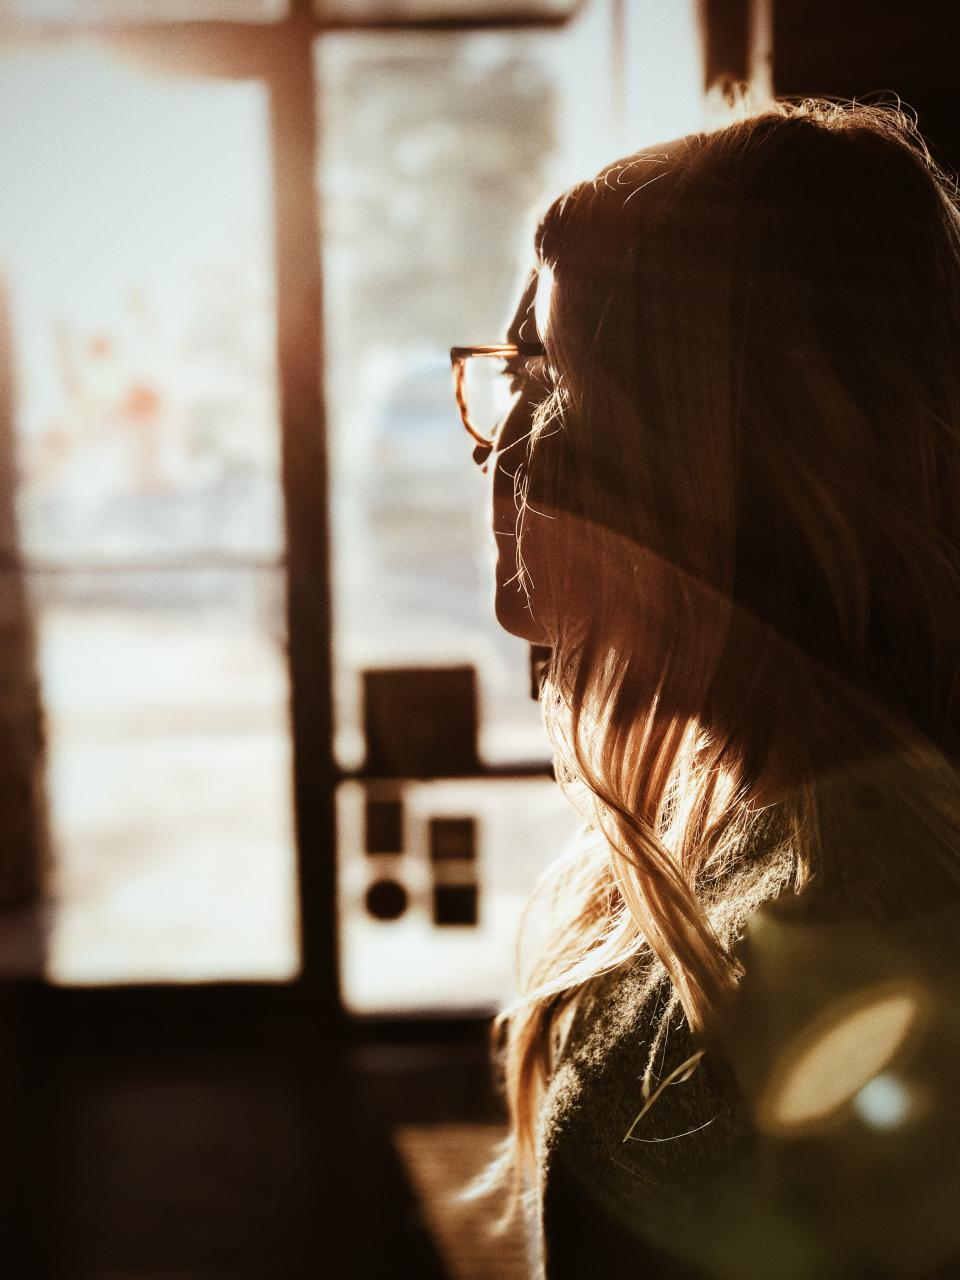 bokeh blur sunlight eyeglasses woman girl lady people window pane reflection fashion